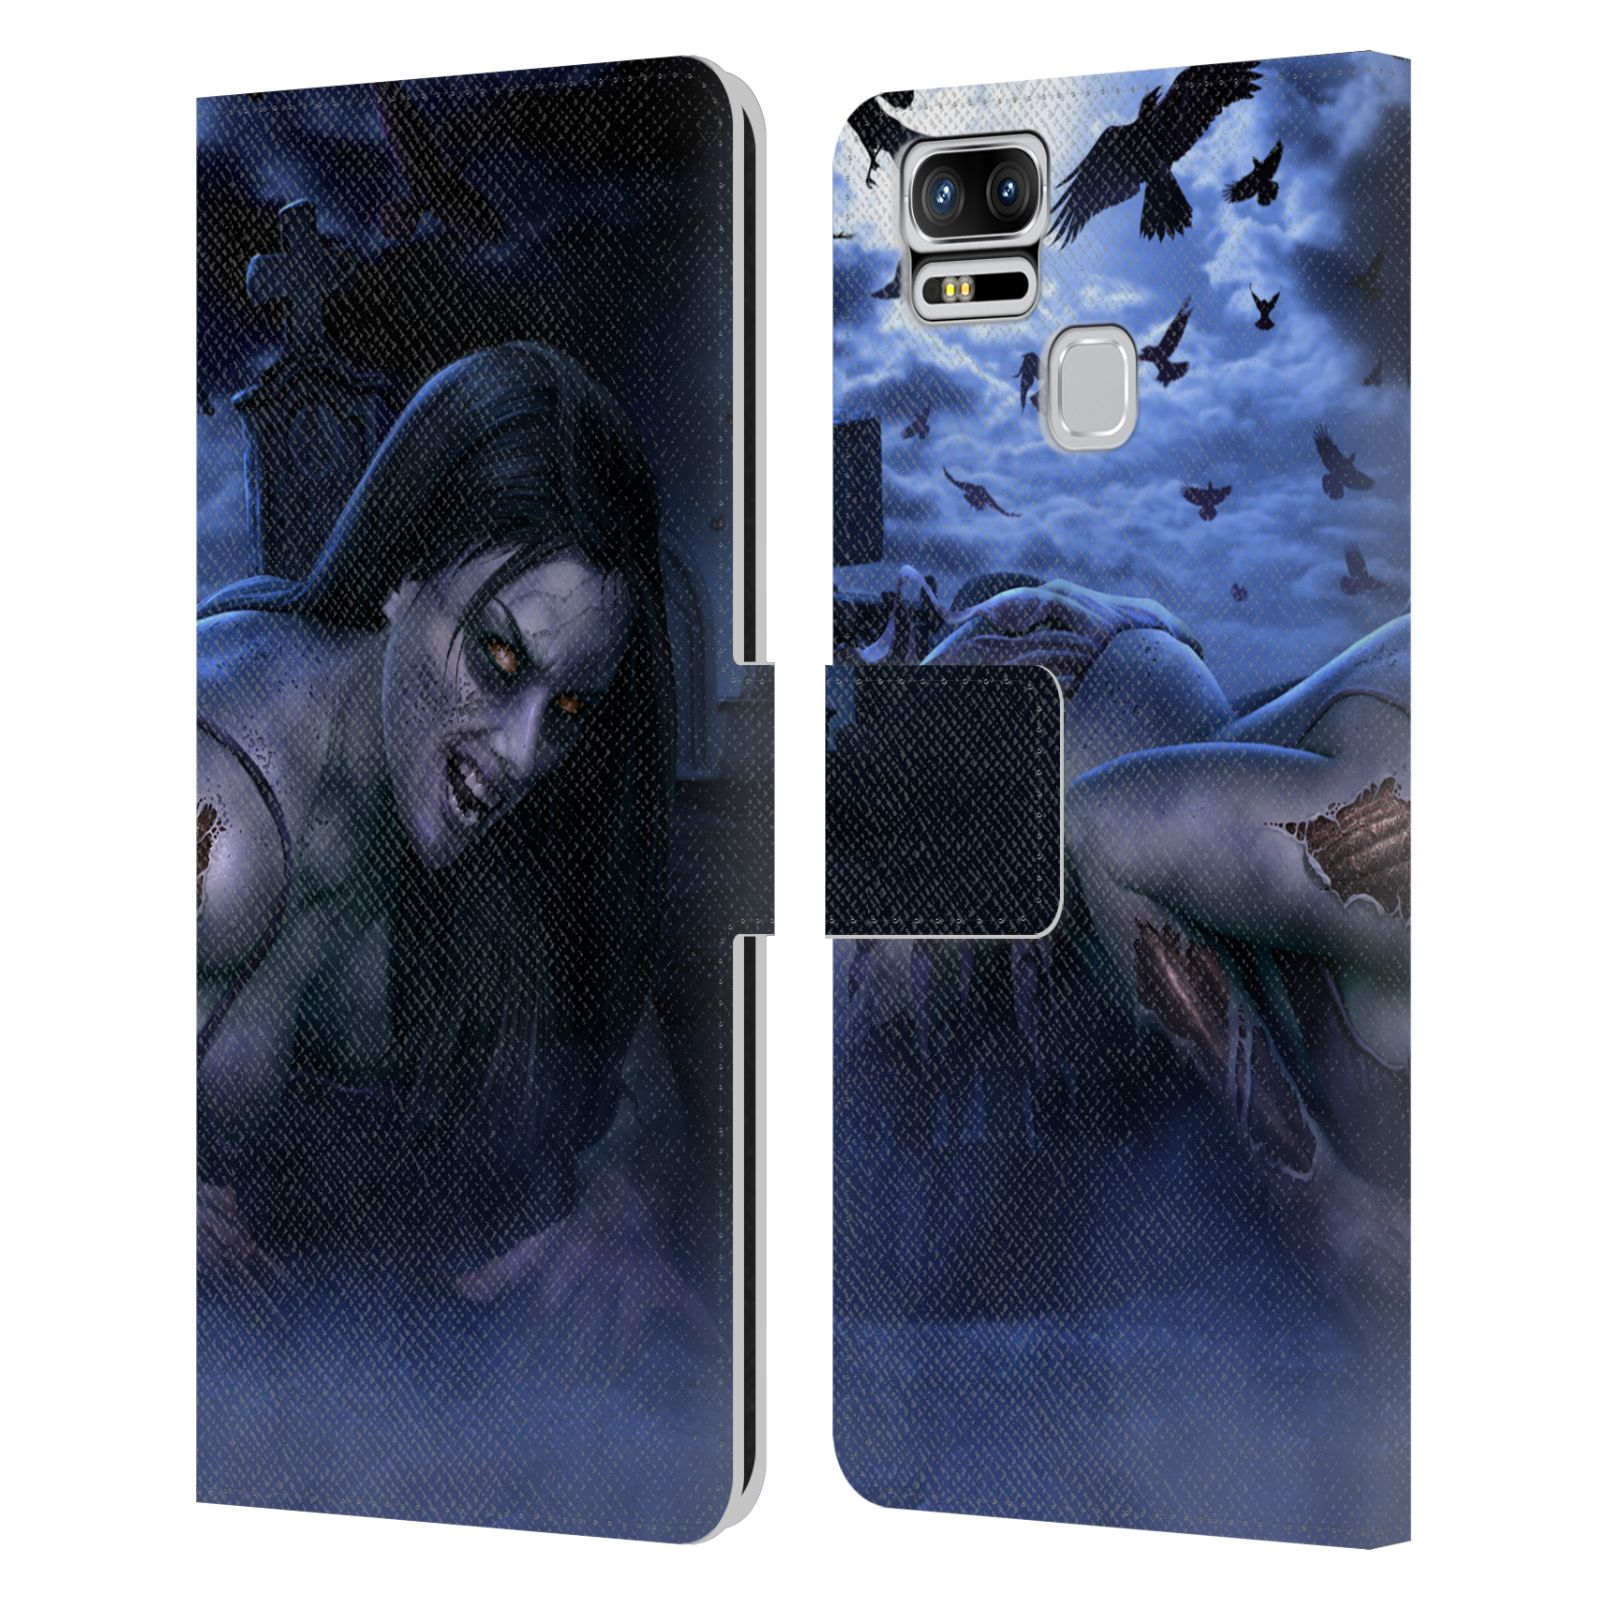 OFFICIAL-TOM-WOOD-HORROR-LEATHER-BOOK-WALLET-CASE-COVER-FOR-ASUS-ZENFONE-PHONES